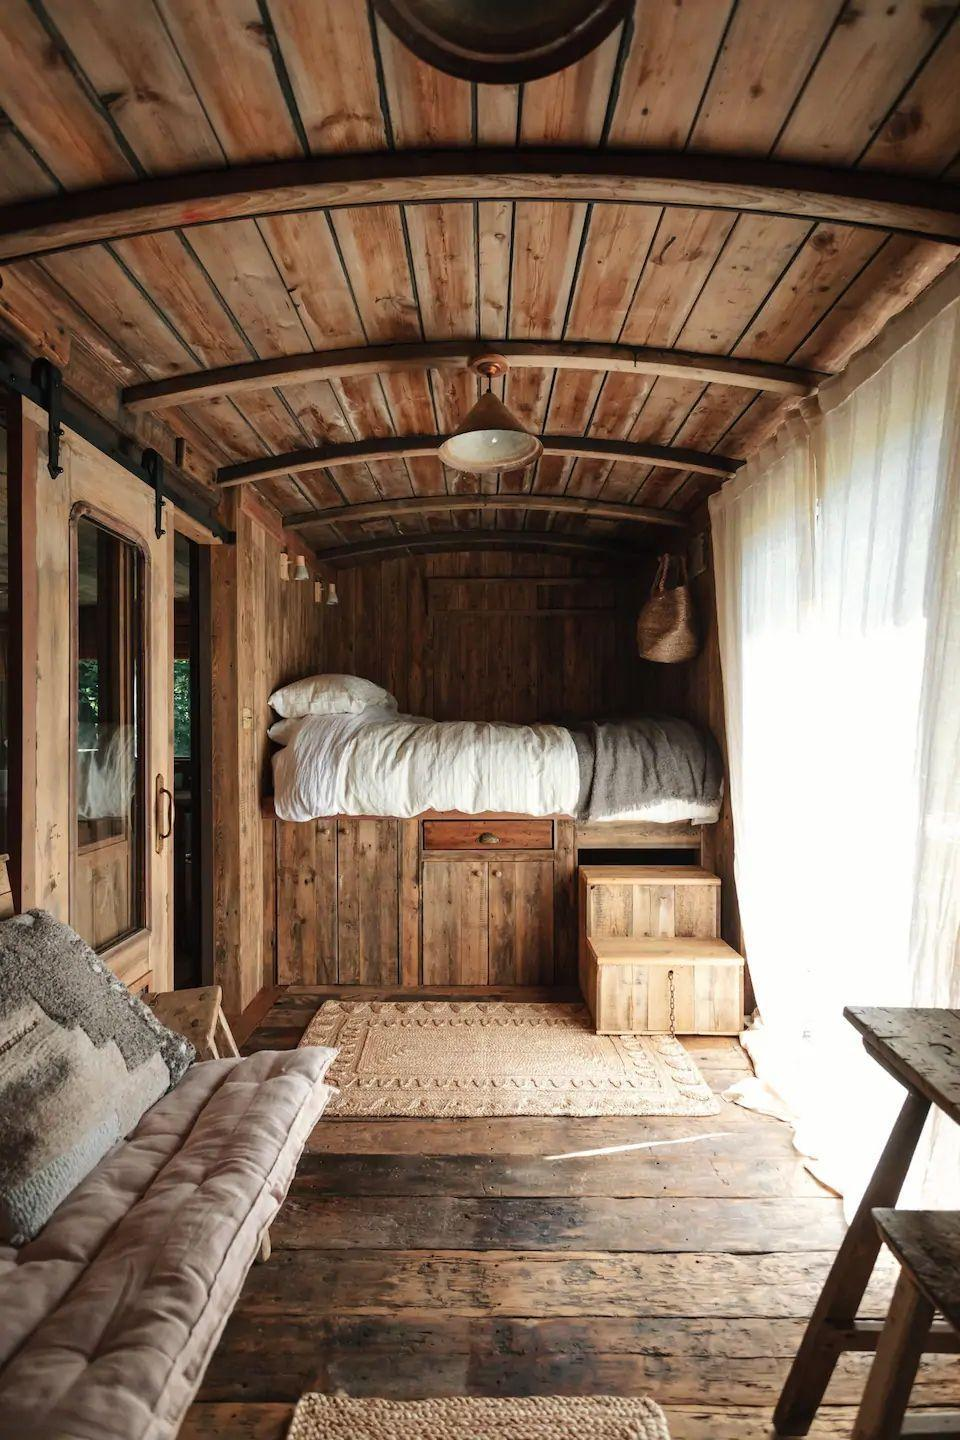 "<p>Glamping has never looked so good. If you're after a remote escape that allows you to feel at one with nature and experience camping with a luxe twist, you'll want to know about this wonderfully restored train carriage in Shropham. The Airbnb has all the features you'd never expect from the typical camping trip: soft linen sheets from Piglet, a stylish shower, rustic reclaimed furniture and a delightful outdoor area to relax.</p><p><strong>Sleeps:</strong> 2</p><p><strong>Make sure you... </strong>Take it all in. It's the glamping experience to end all glamping experiences!</p><p><strong>Price per night:</strong> £220</p><p><a class=""link rapid-noclick-resp"" href=""https://airbnb.pvxt.net/QOyedY"" rel=""nofollow noopener"" target=""_blank"" data-ylk=""slk:BOOK HERE"">BOOK HERE</a></p>"